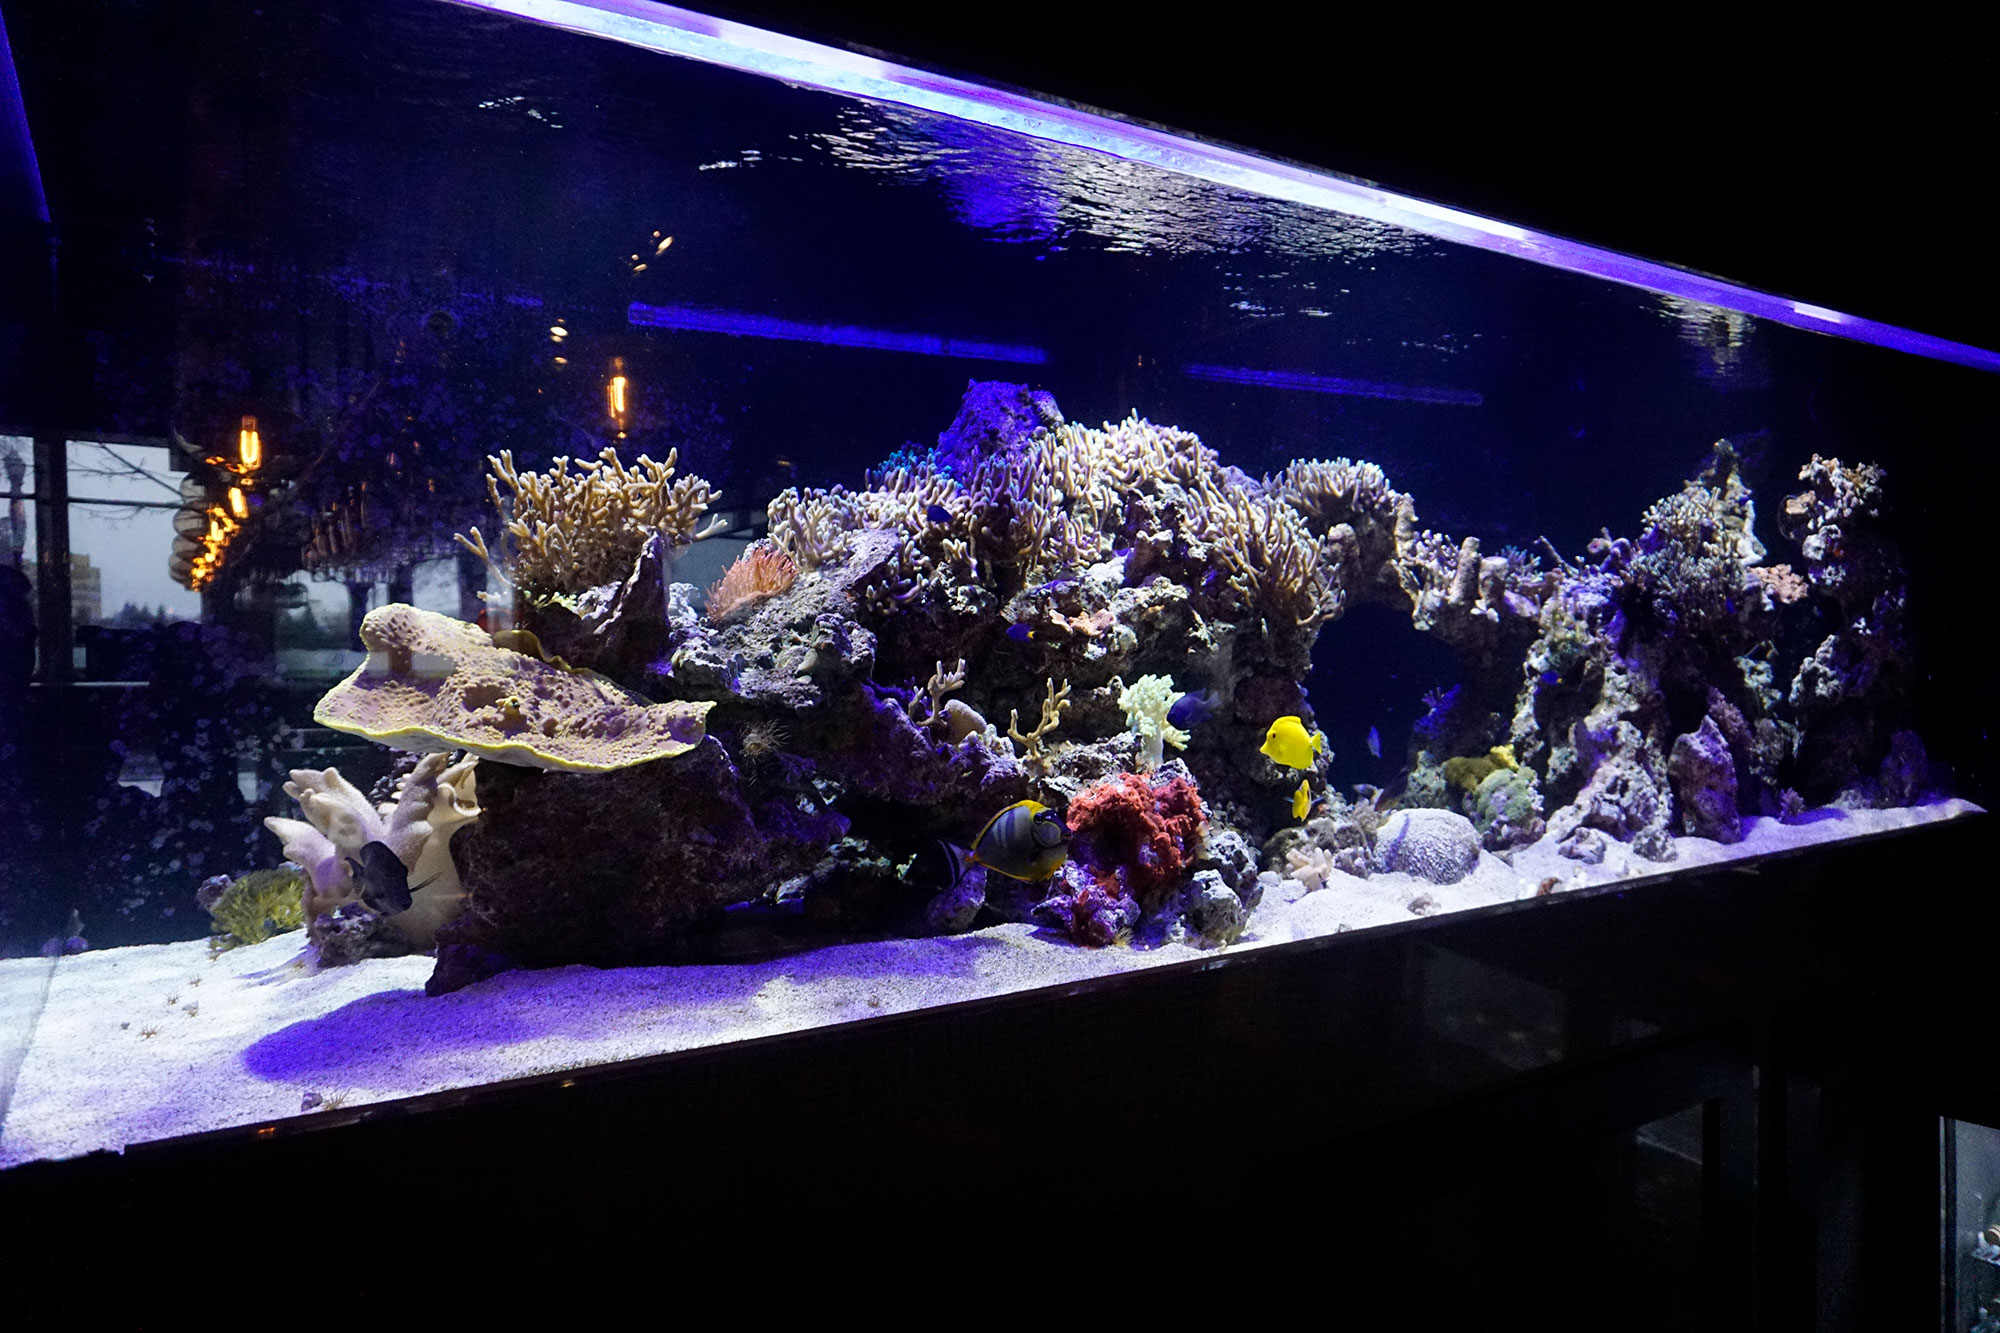 Coral reef aquarium maintenance aquarium services of for Design aquarium